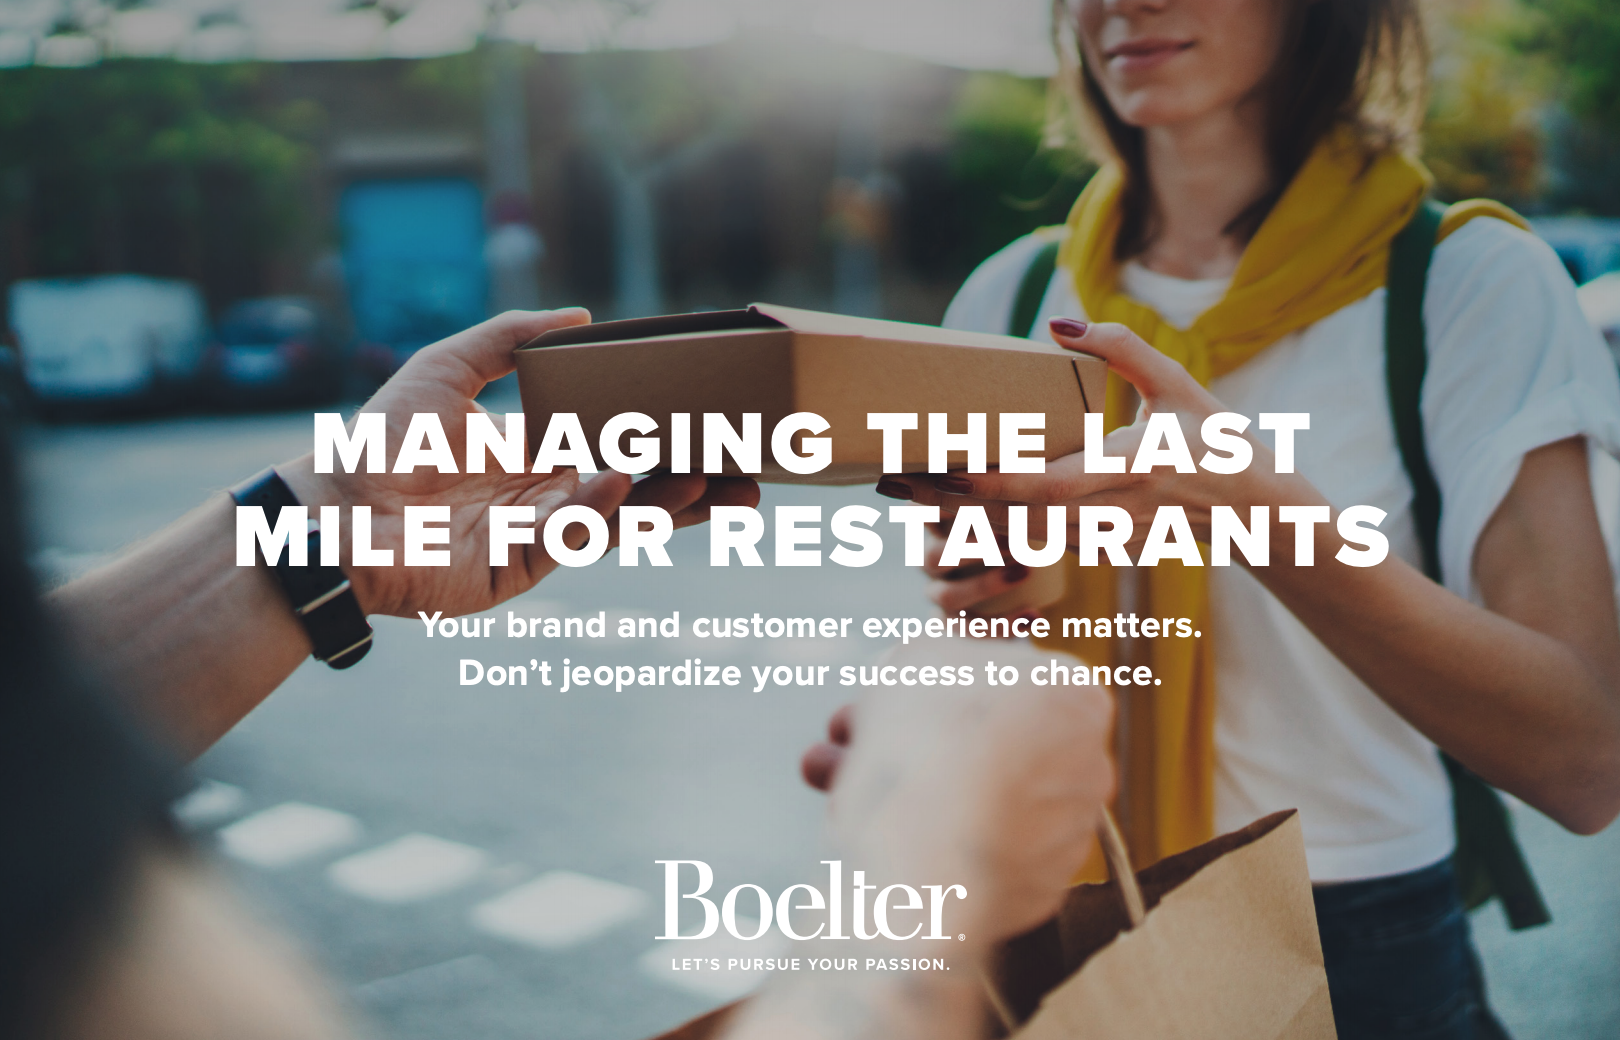 Managing the Last Mile for Restaurants eBook cover